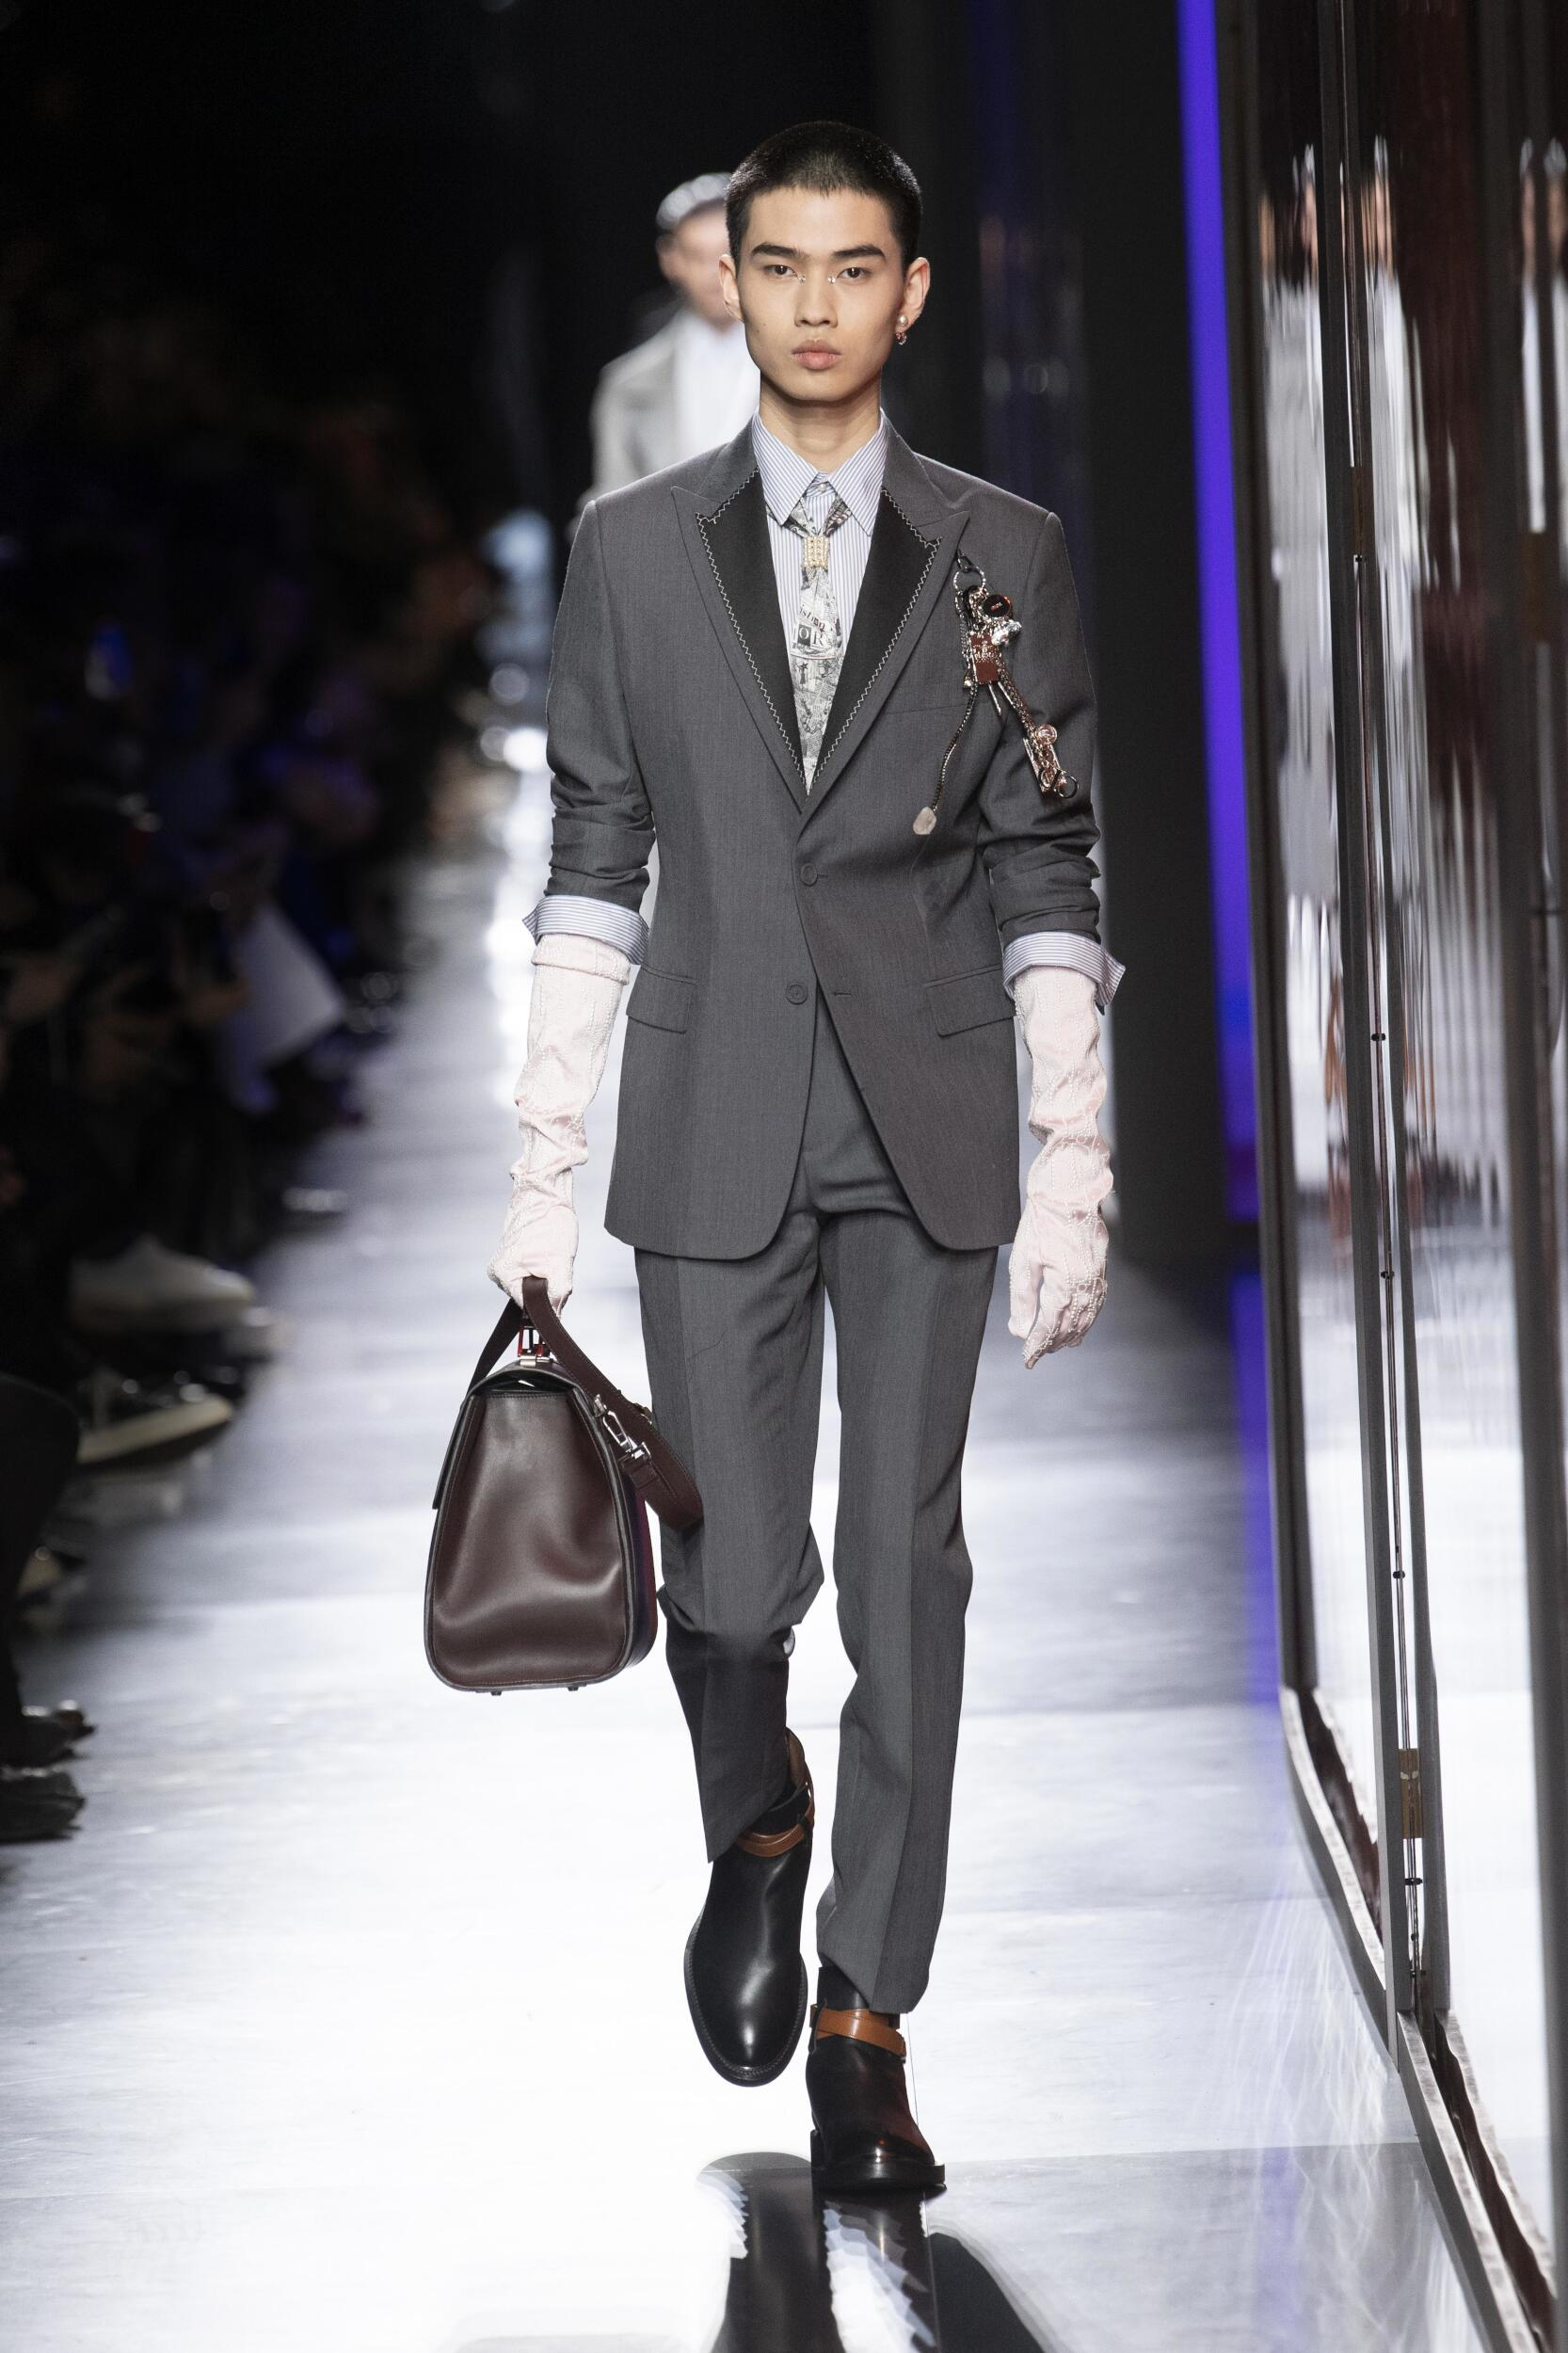 2020 Catwalk Dior Man Fashion Show Winter